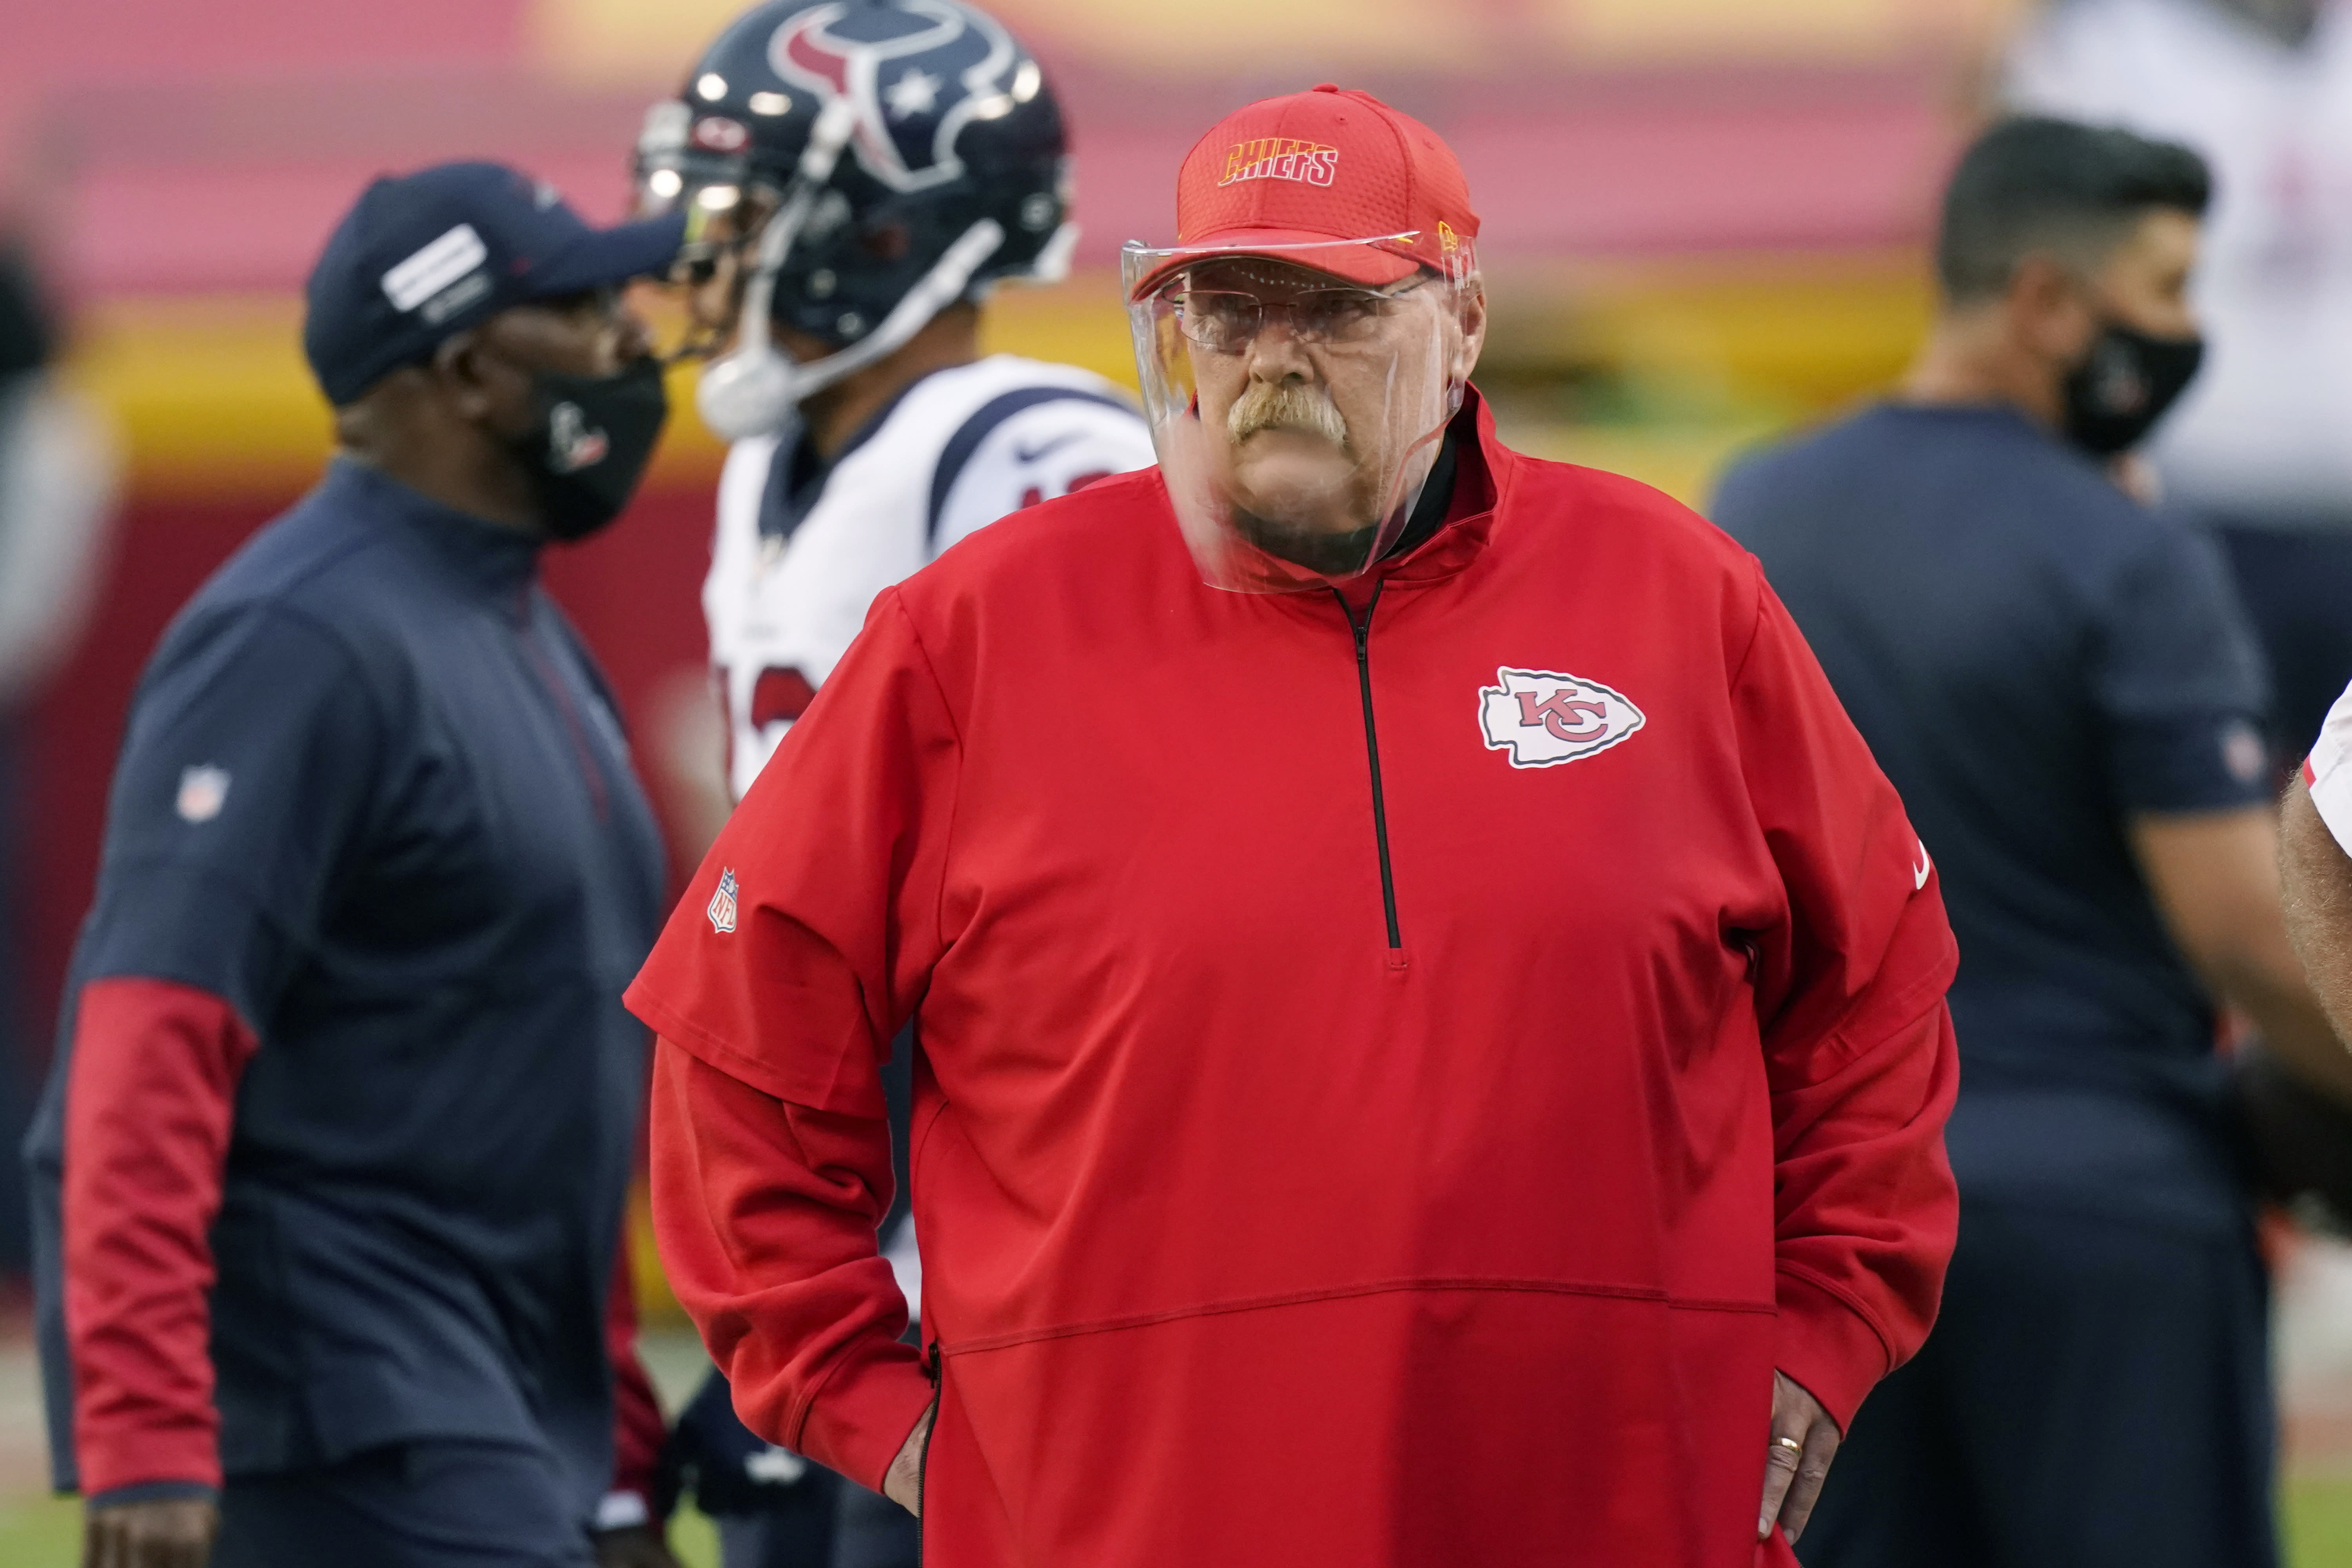 FILE - In this Sept. 10, 2020 file photo, Kansas City Chiefs head coach Andy Reid watches as players warm up before an NFL football game against the Houston Texans in Kansas City, Mo. Buffalo Bills coach Sean McDermott pays credit to experiences and advice he gained working under Reid, while the two were in Philadelphia, including getting fired by Reid in 2010, which McDermott says was the best thing to happen to his career. (AP Photo/Charlie Riedel, File)